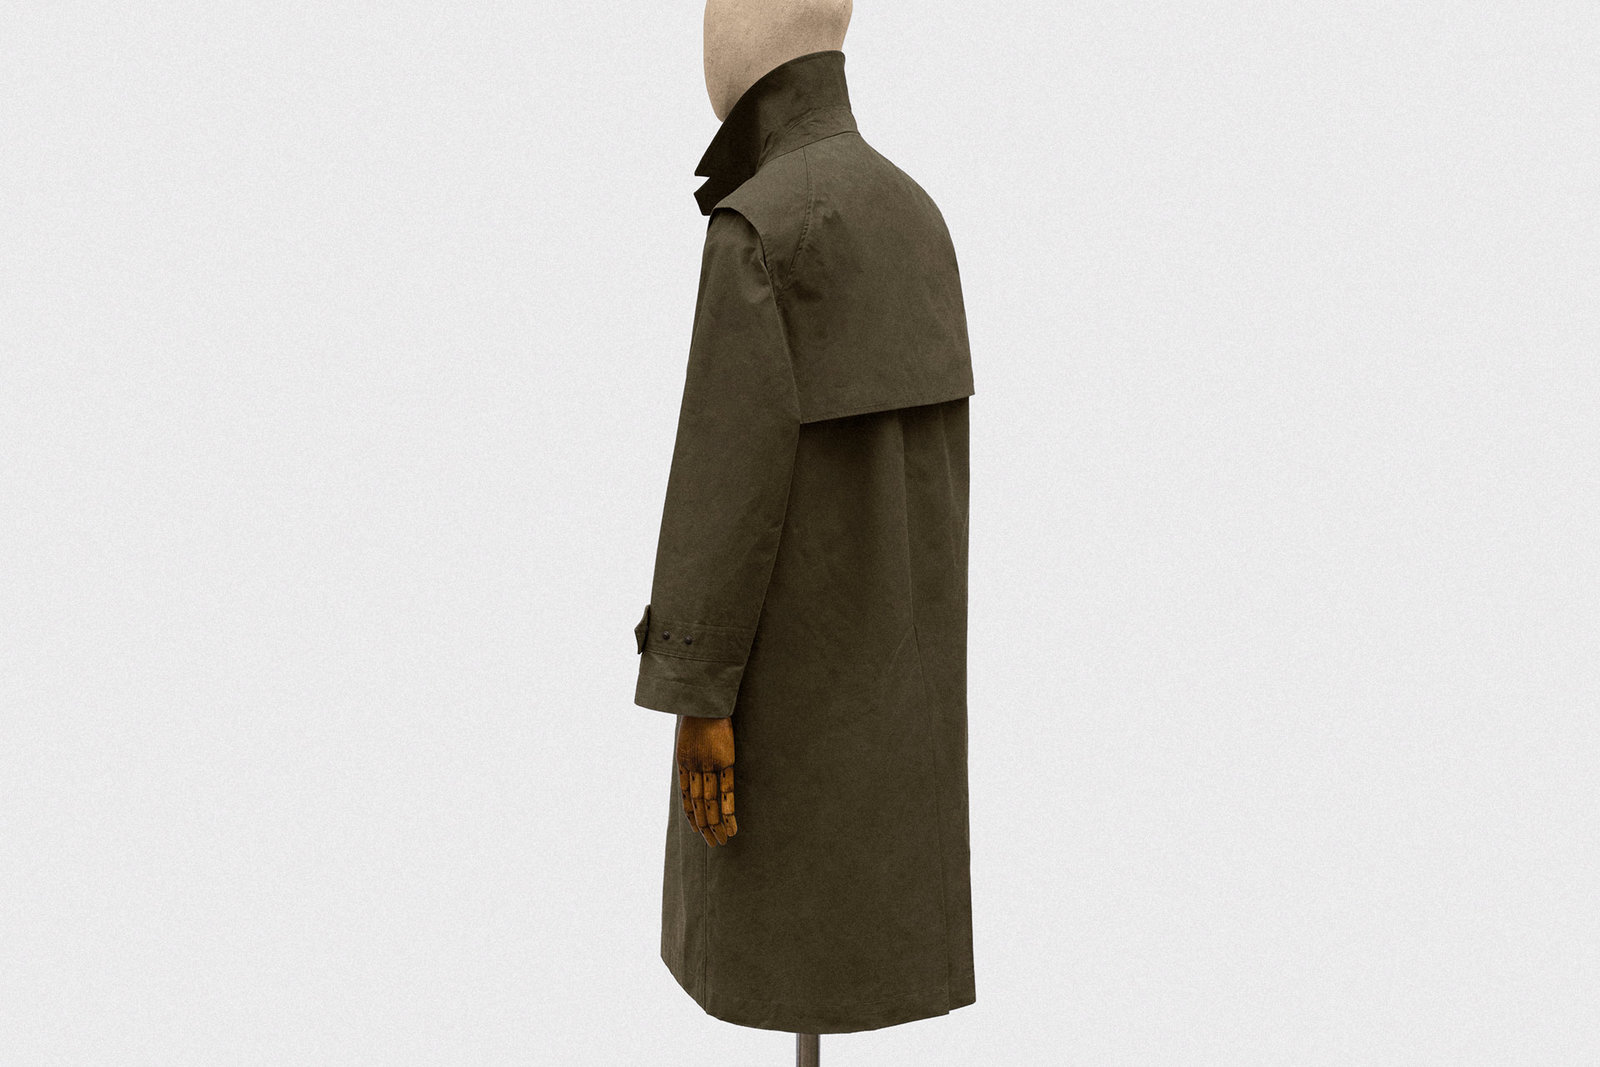 duster-coat-cotton-staywax-olive-drab-5@2x.jpeg